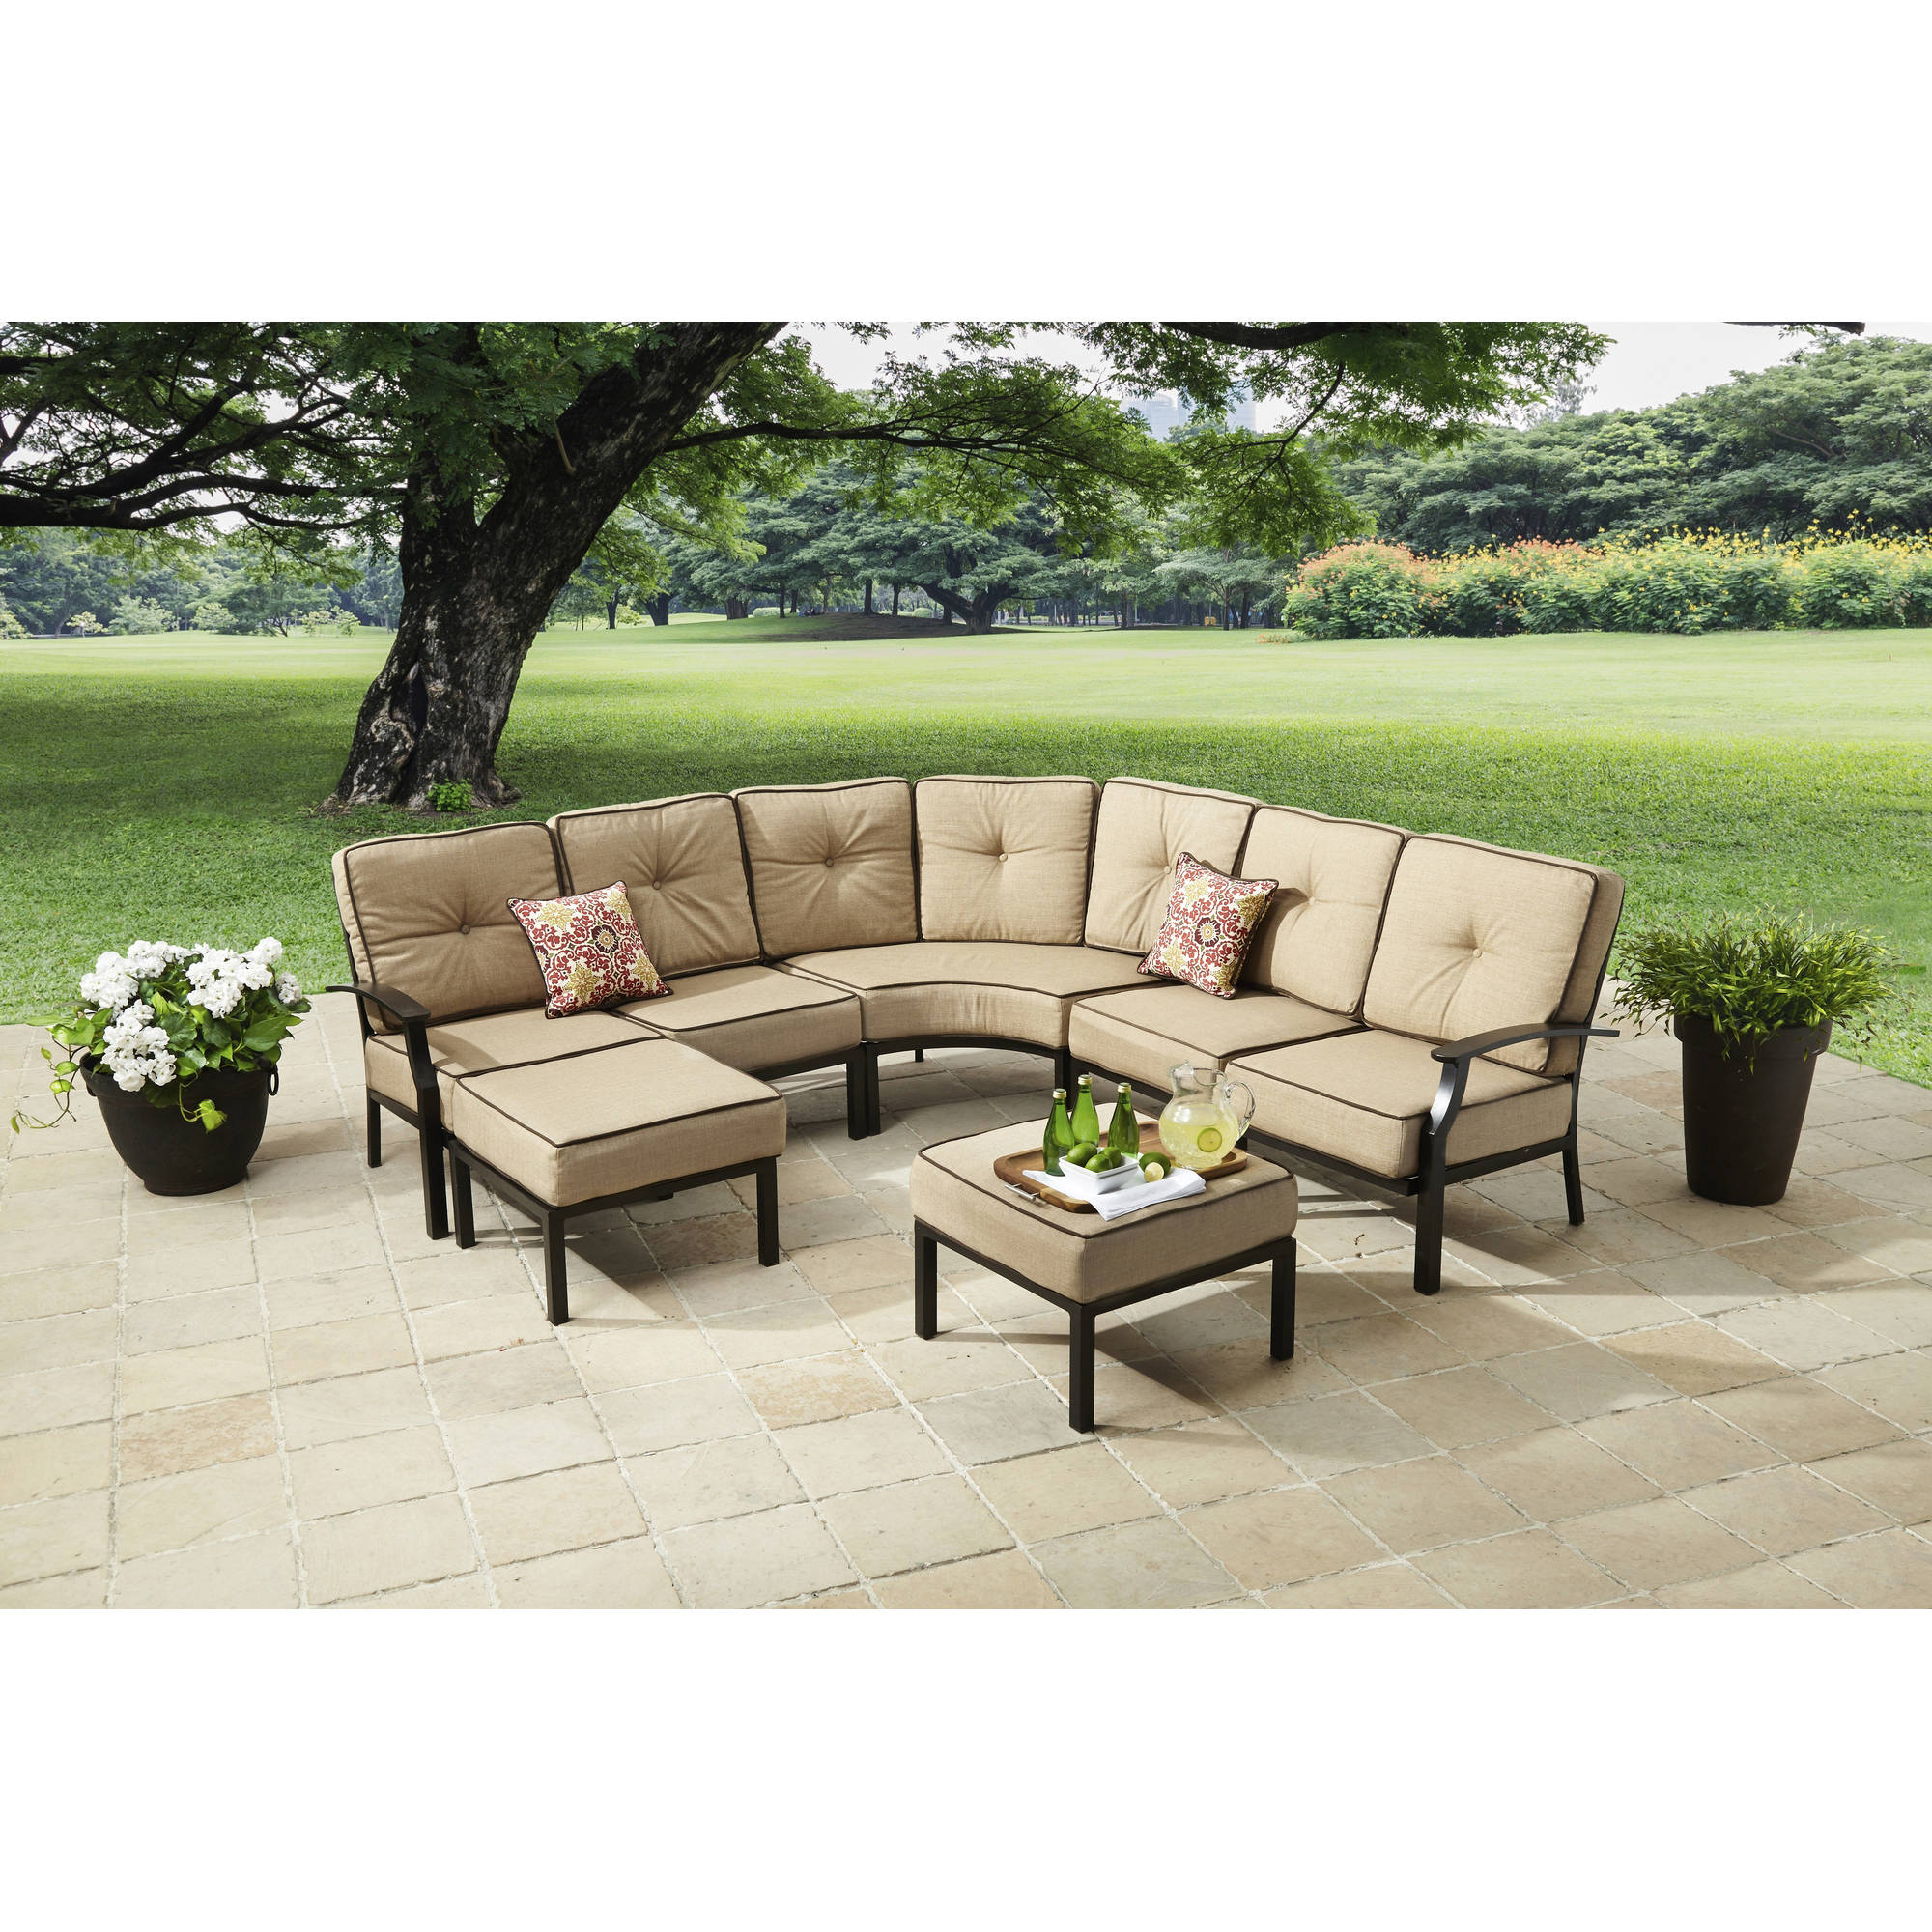 Attractive Better Homes And Gardens Carter Hills 7 Piece Outdoor Sectional Sofa Set,  Seats 5,